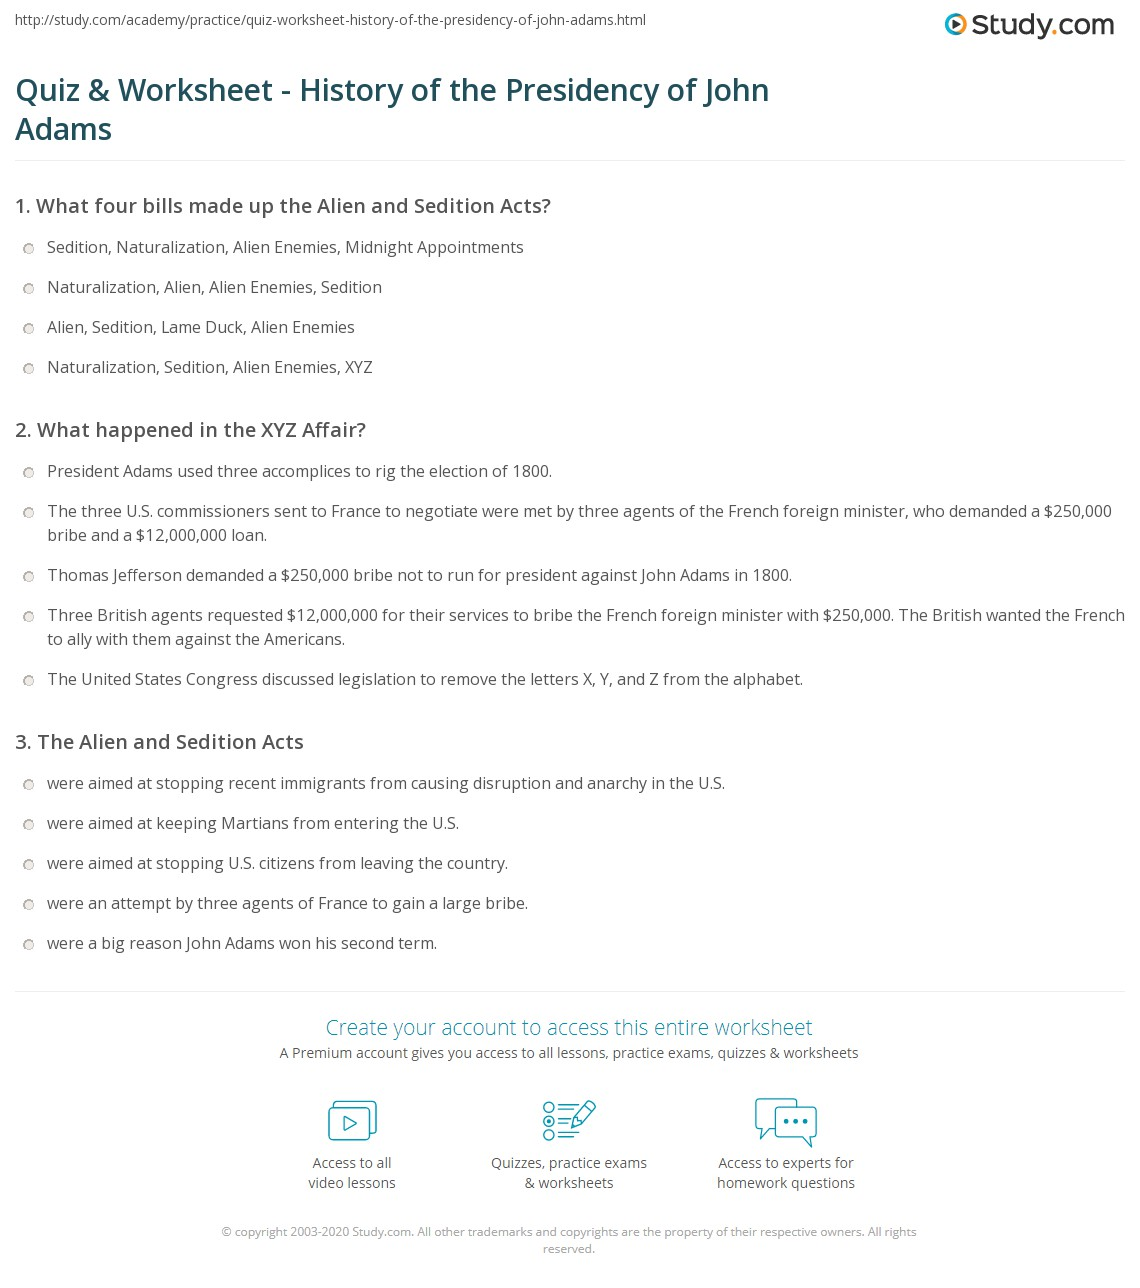 Print President John Adams: From Alien and Sedition Acts to XYZ Affair  Worksheet